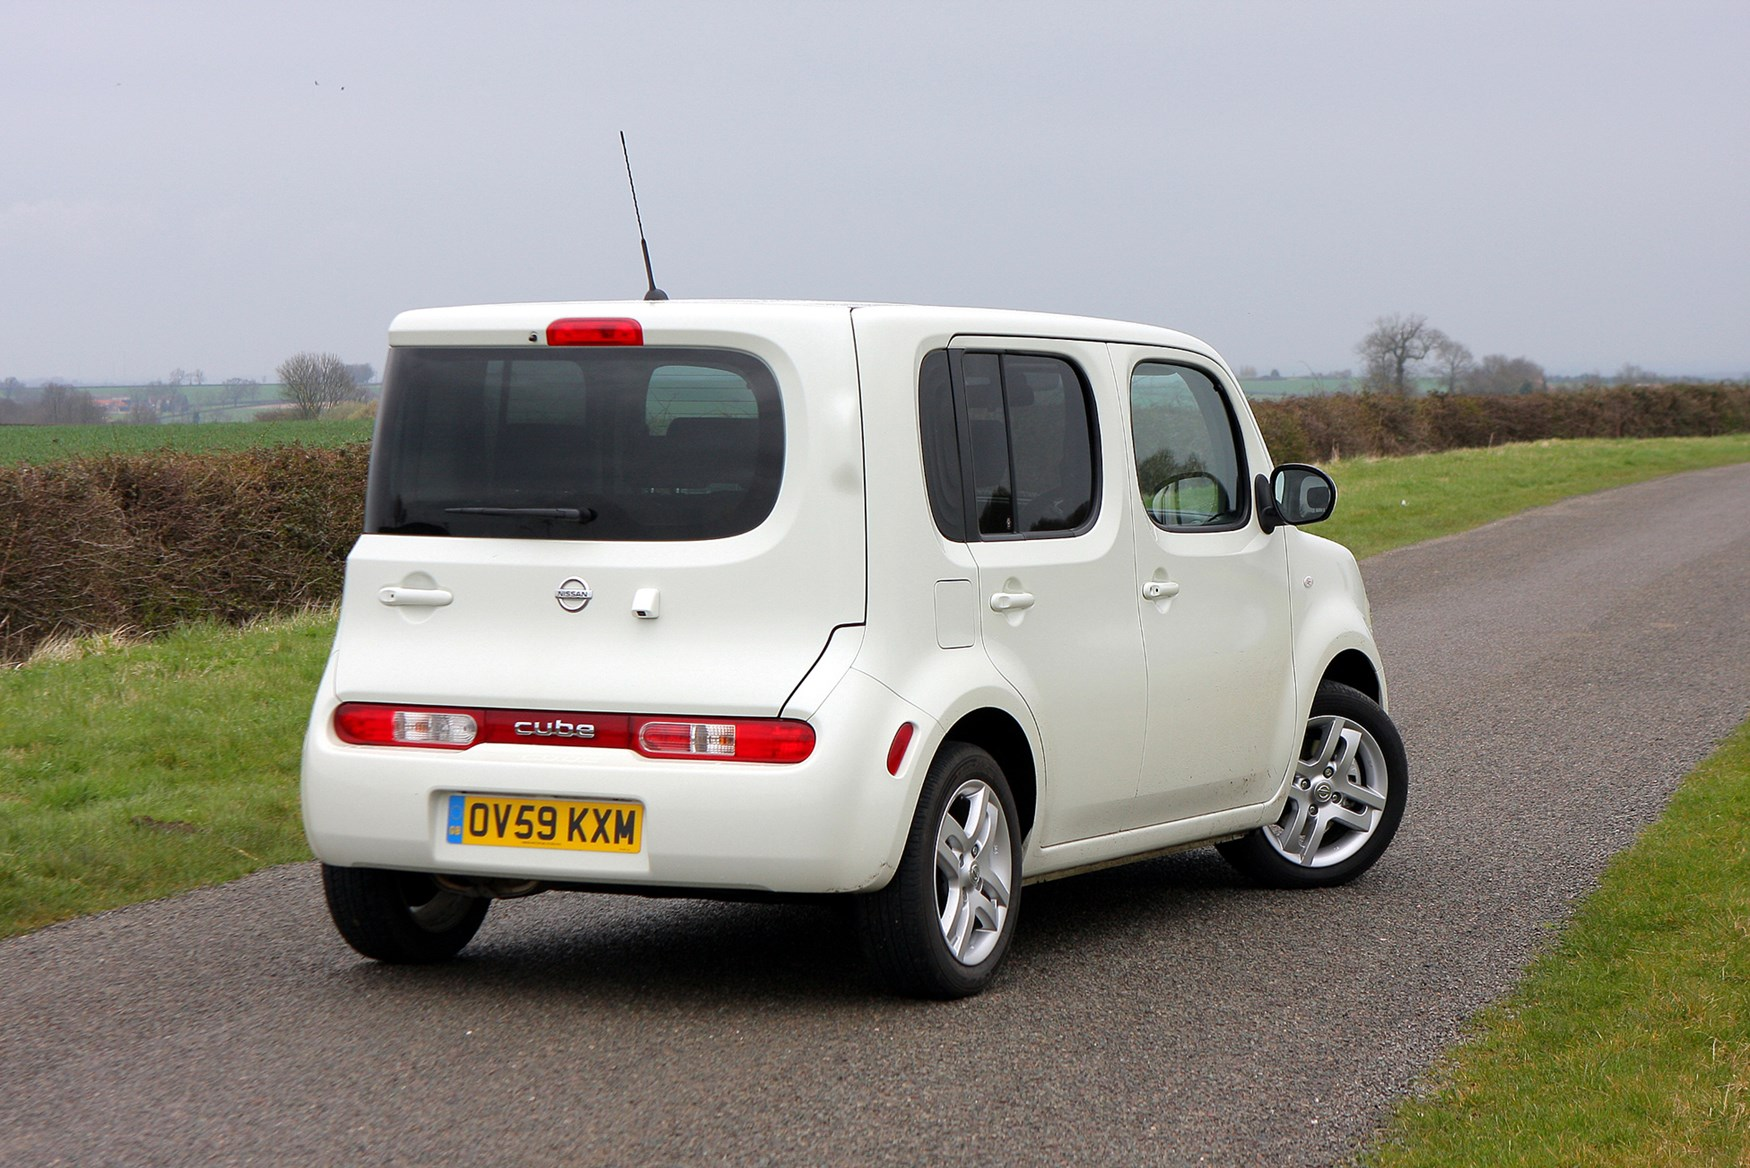 nissan cube estate 2010 2010 photos parkers. Black Bedroom Furniture Sets. Home Design Ideas